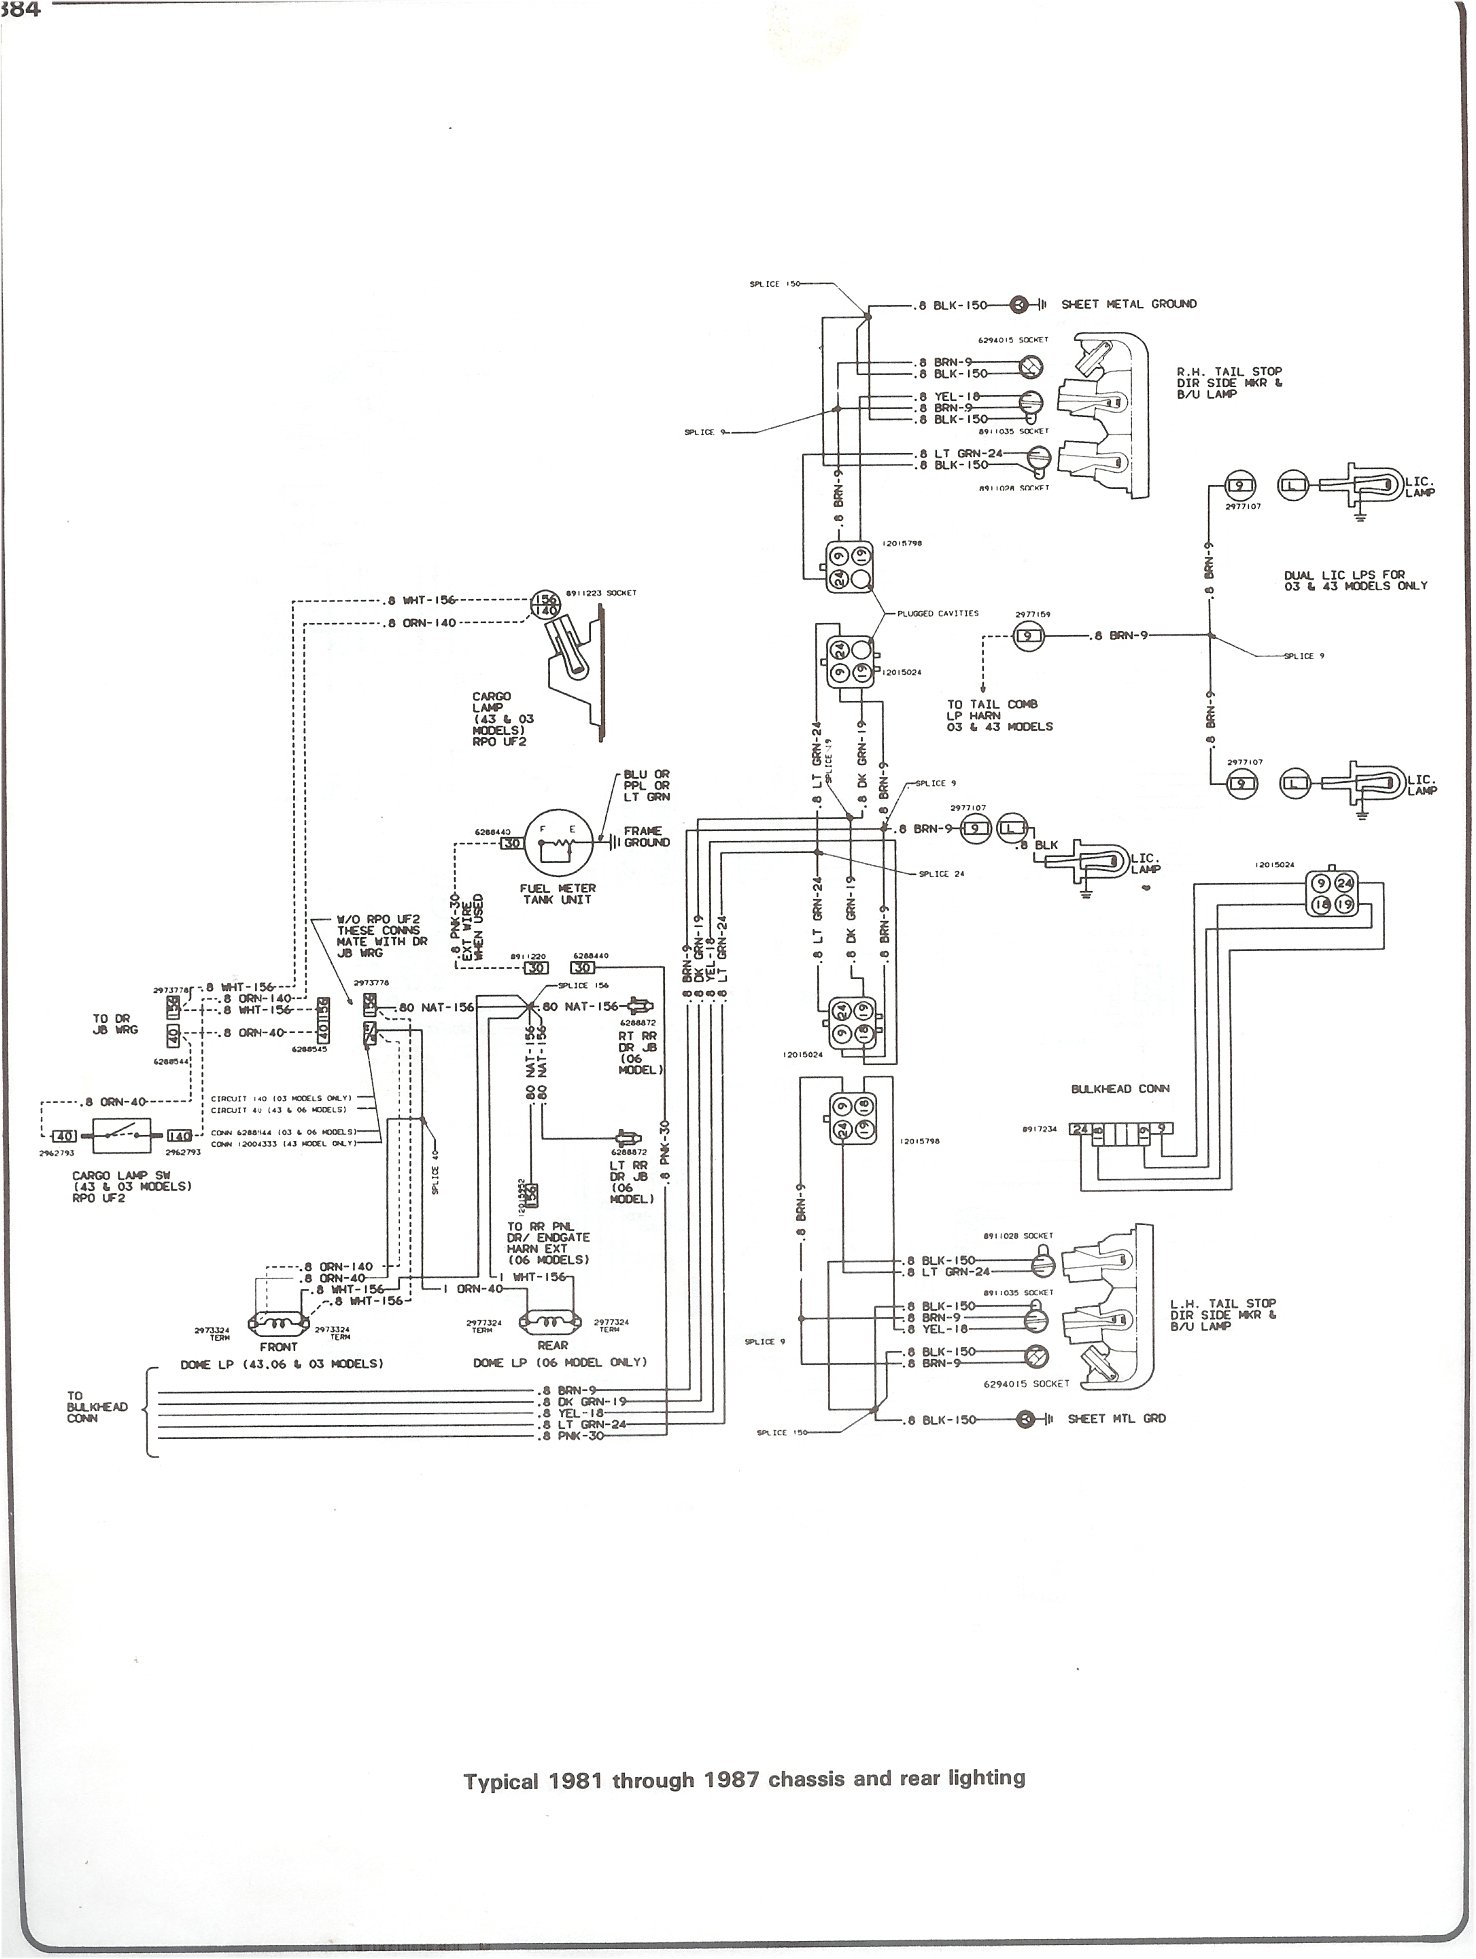 81 87_chass_rr_light complete 73 87 wiring diagrams,1986 Chevy Alternator Wiring Diagram